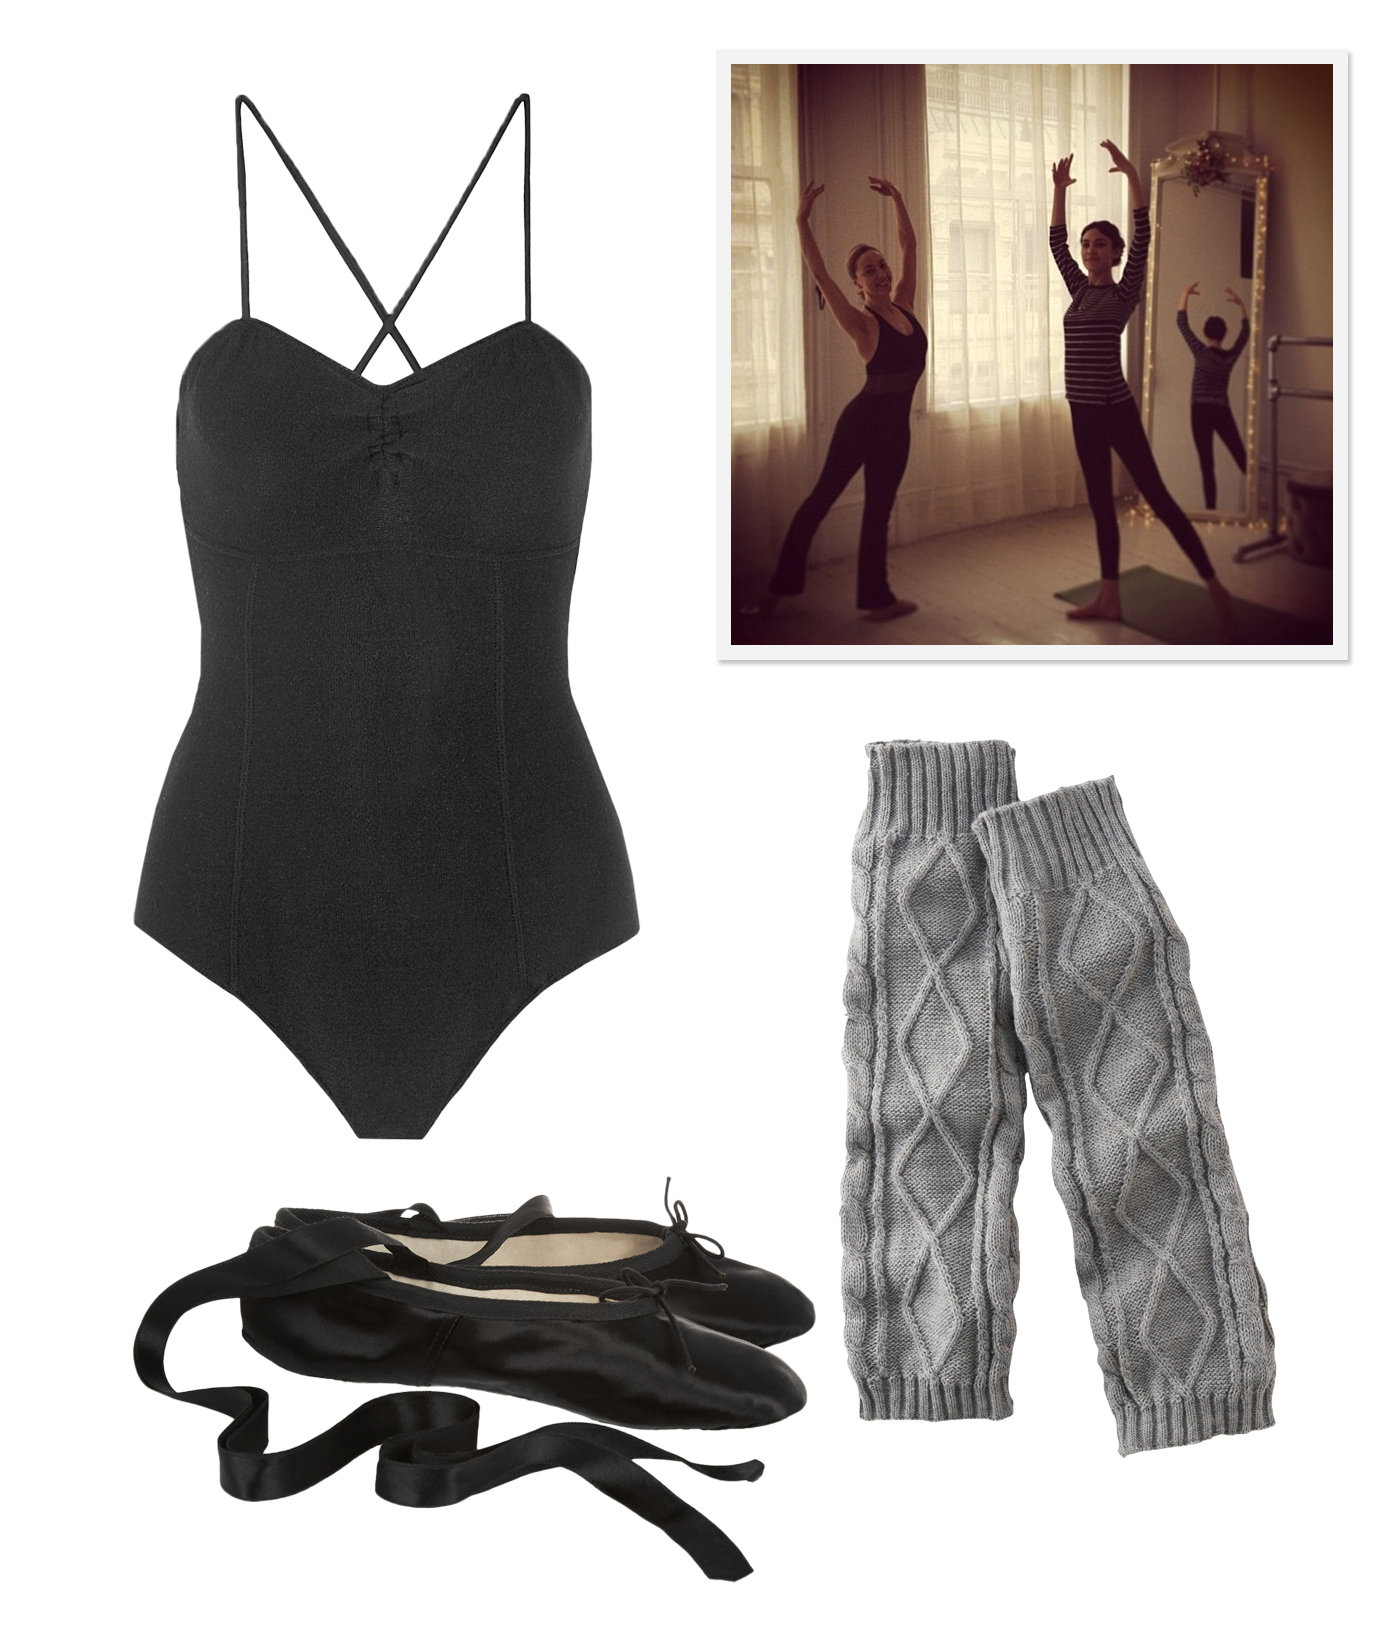 new-years-resolution-workout-gear-04.jpg